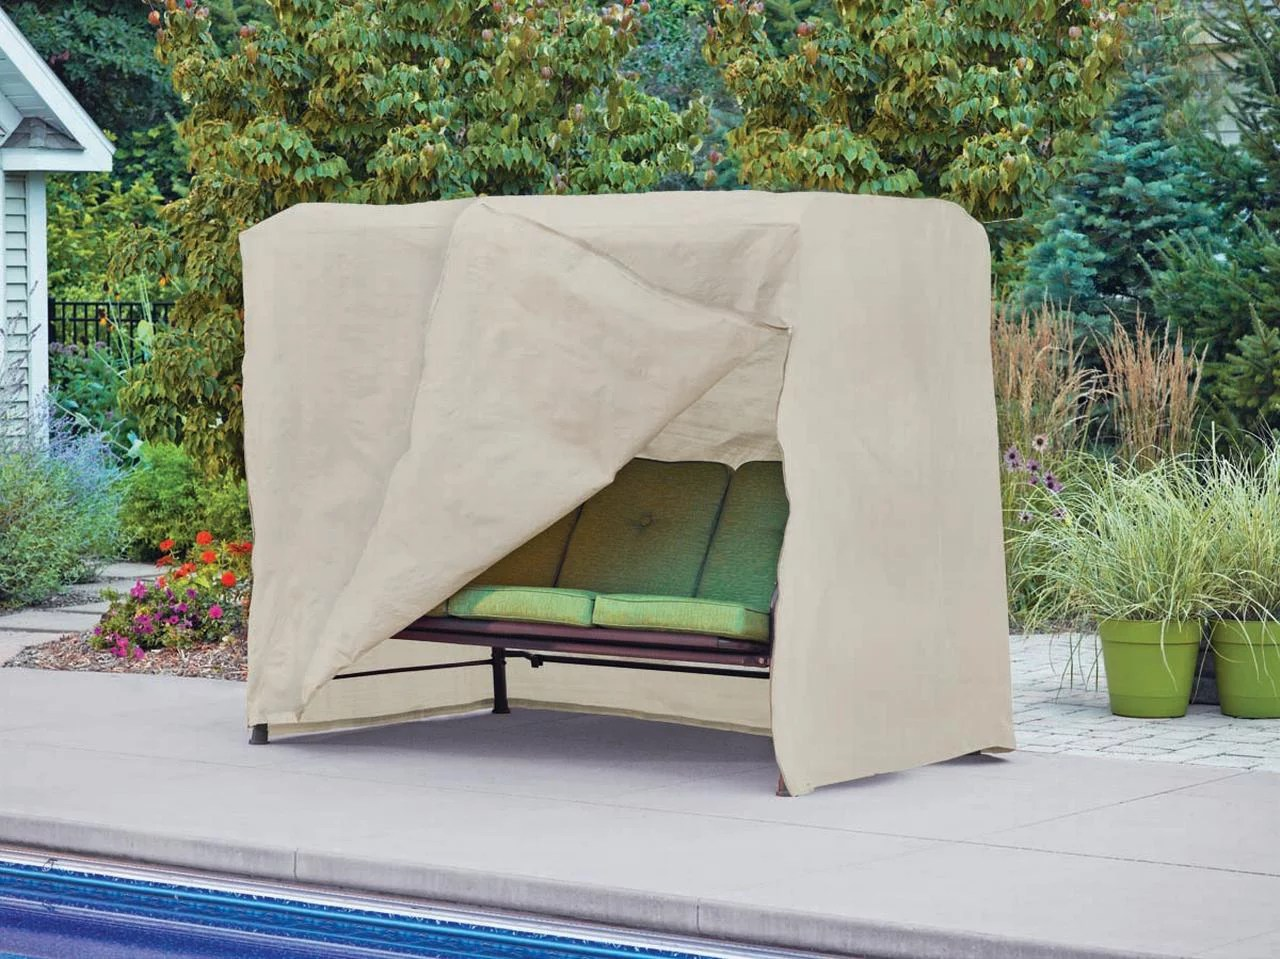 Modern Leisure 5429A Basics Outdoor Patio Swing Cover – Water Resistant (87 W X 64 D X 66 H Inches), Beige